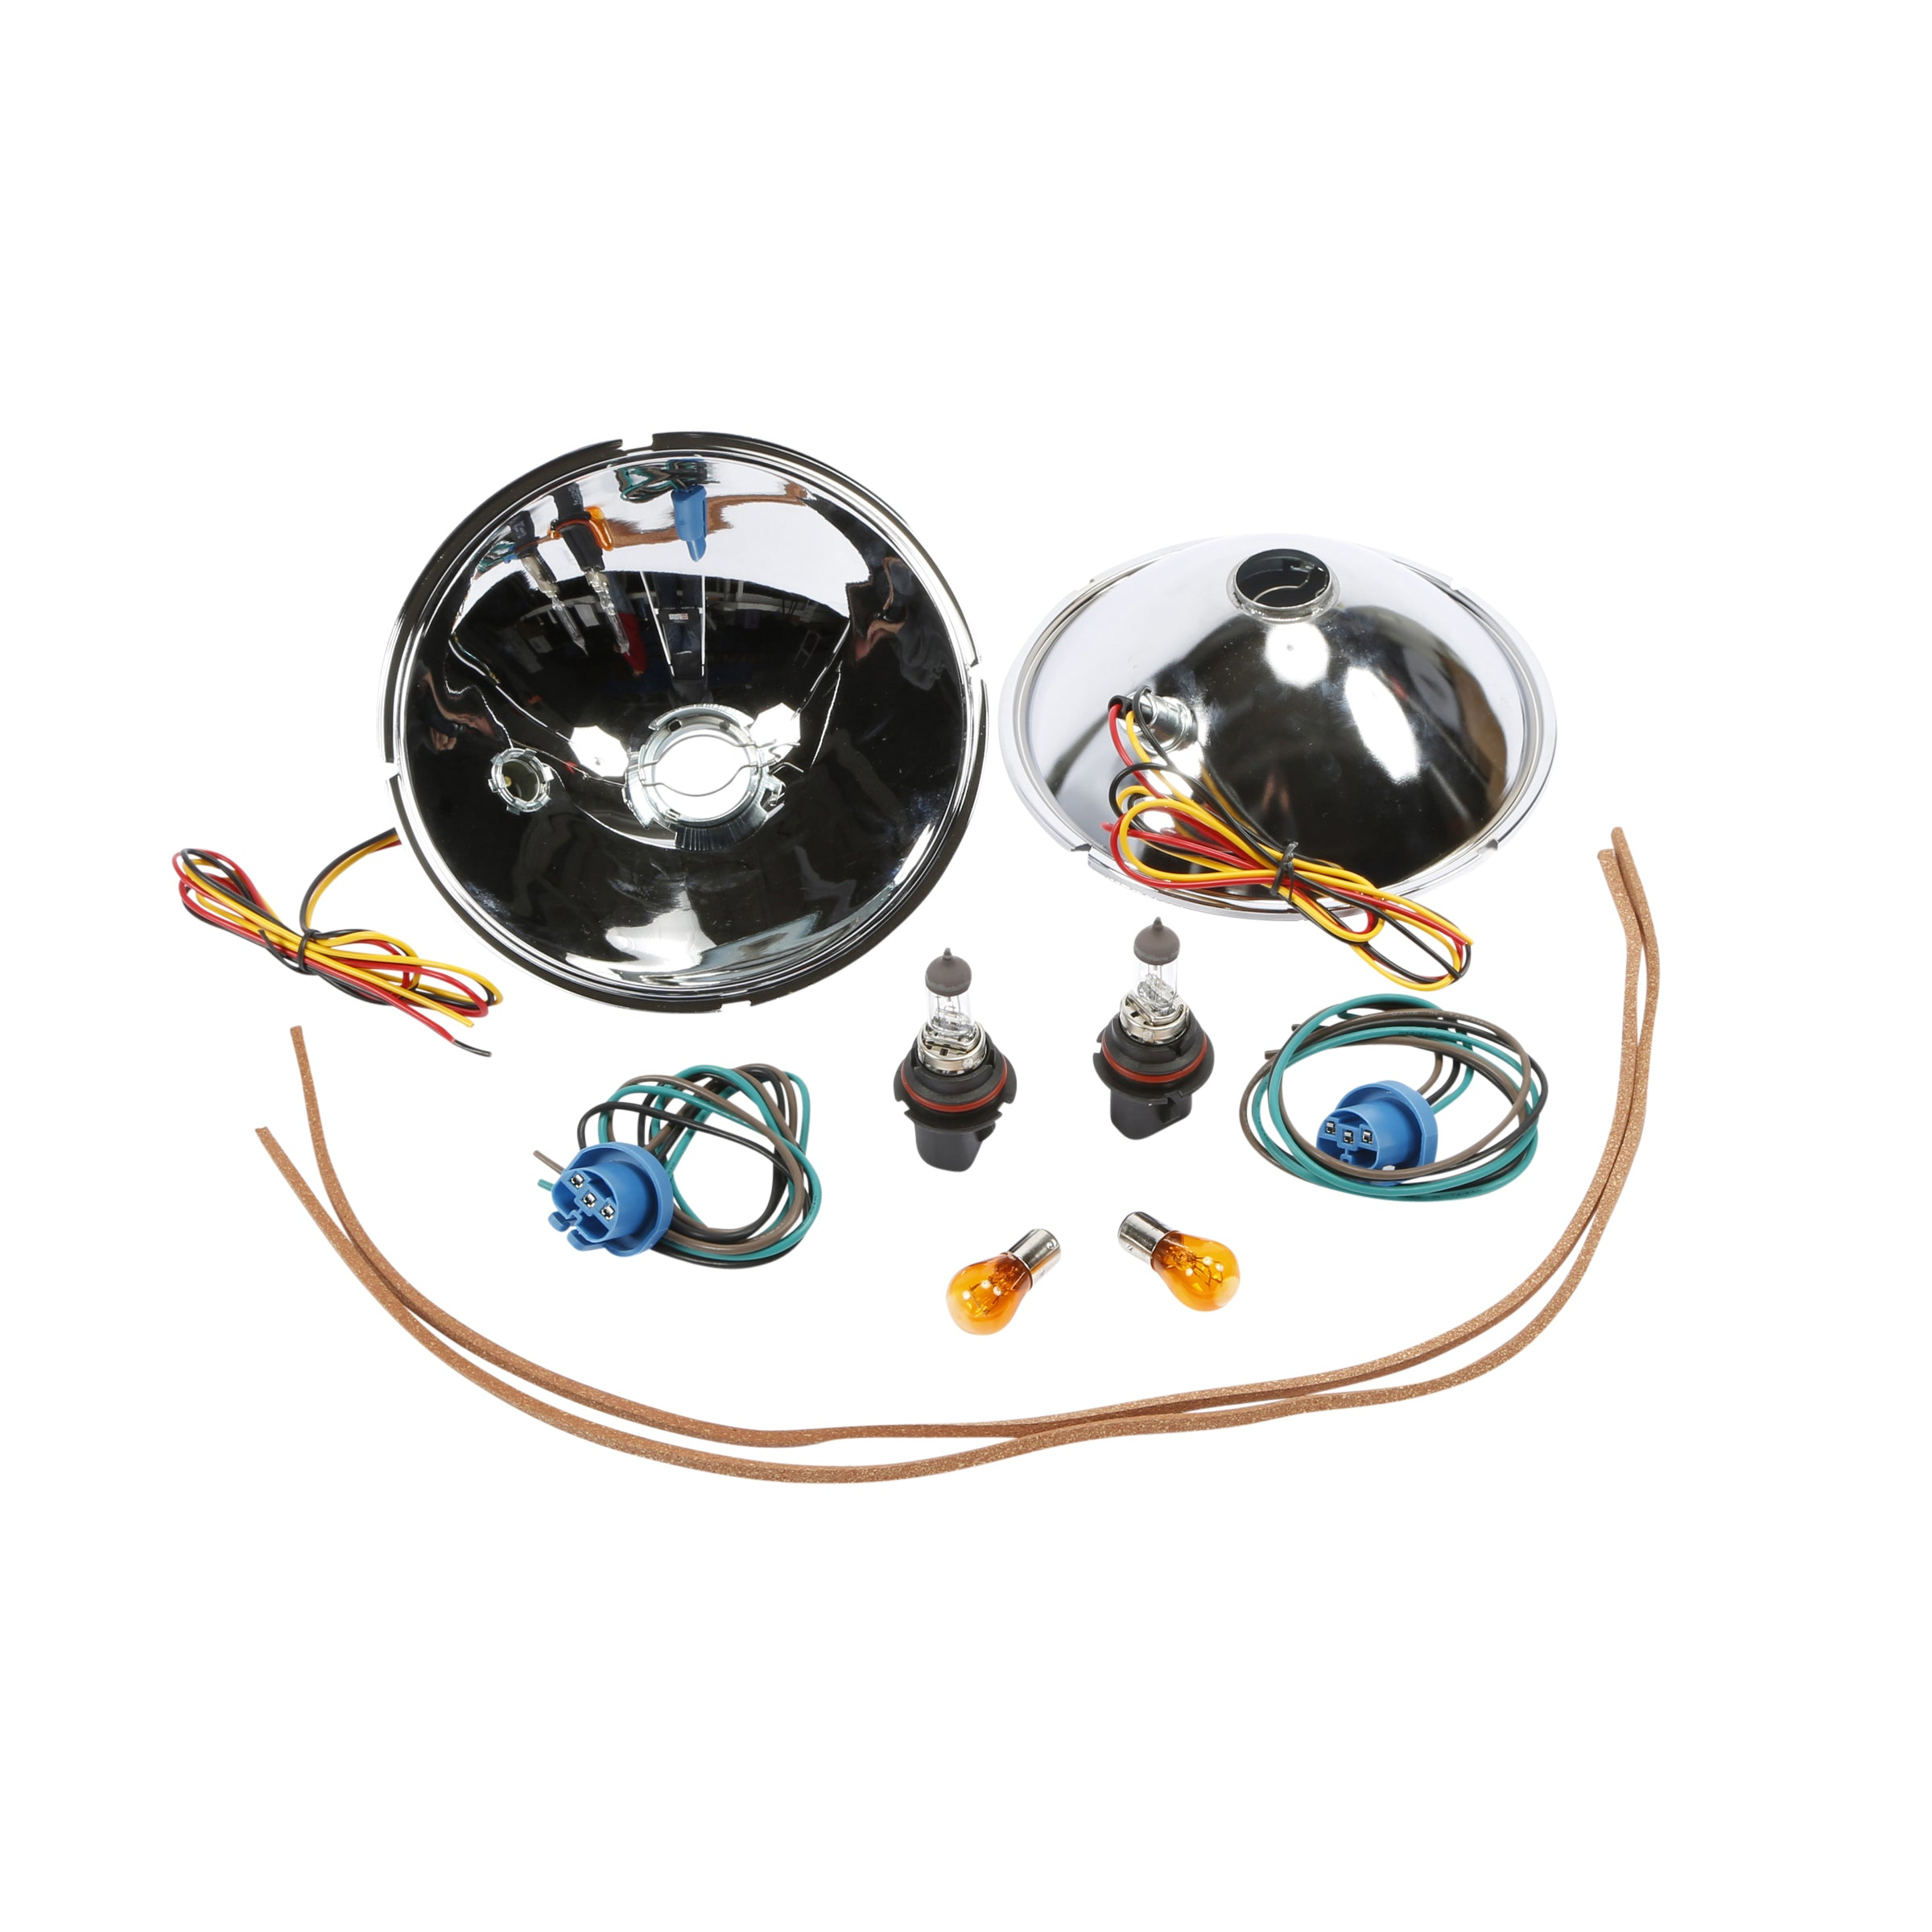 Quartz Halogen Kit with Reflectors (12 Volt With Turn Signals) • 1928-31 Model A Ford